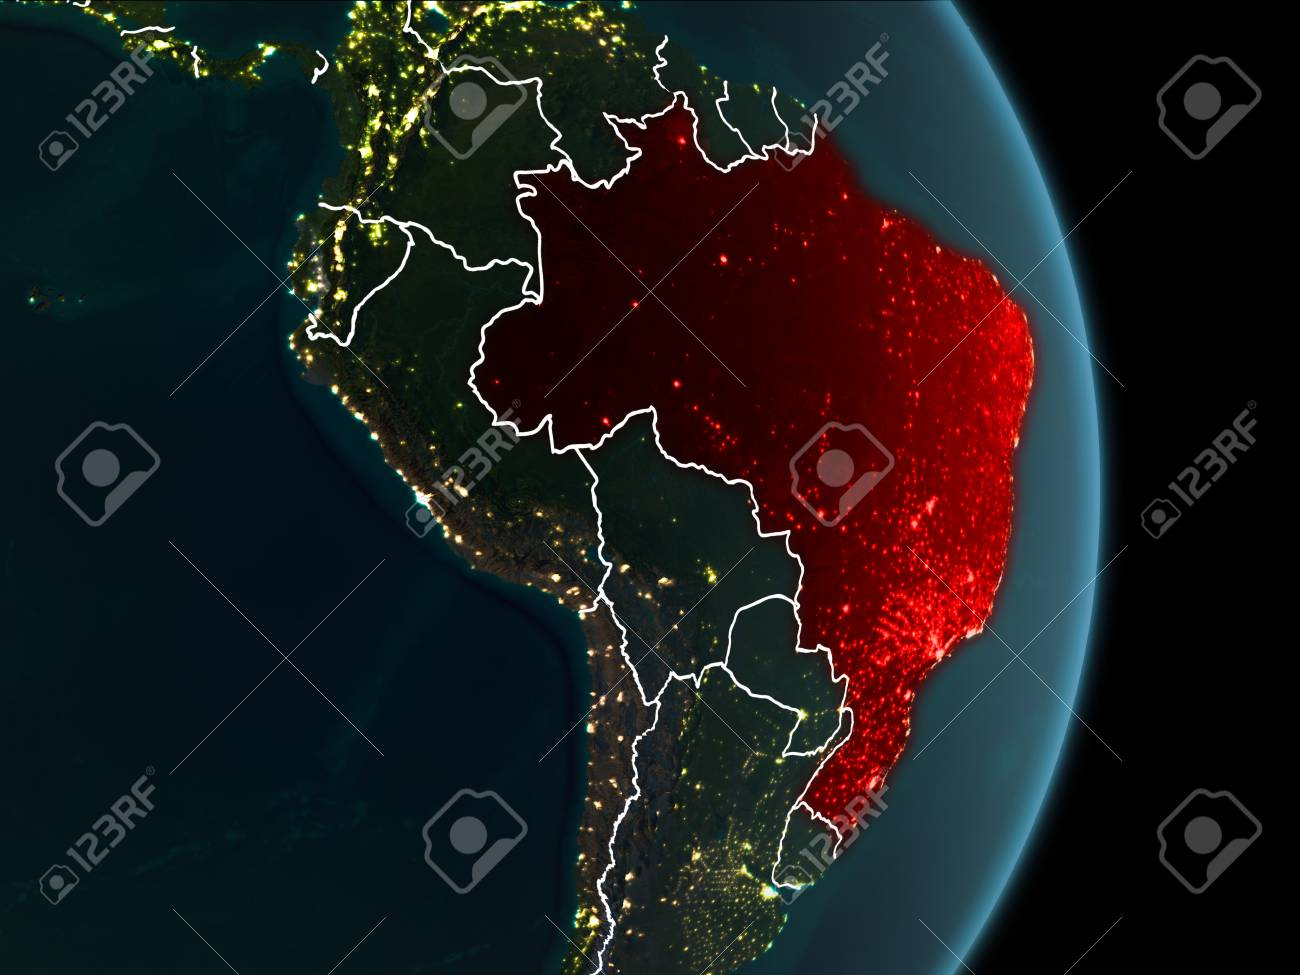 Map of brazil in red as seen from space on planet earth at night illustration map of brazil in red as seen from space on planet earth at night with white borderlines and city lights 3d illustration gumiabroncs Image collections